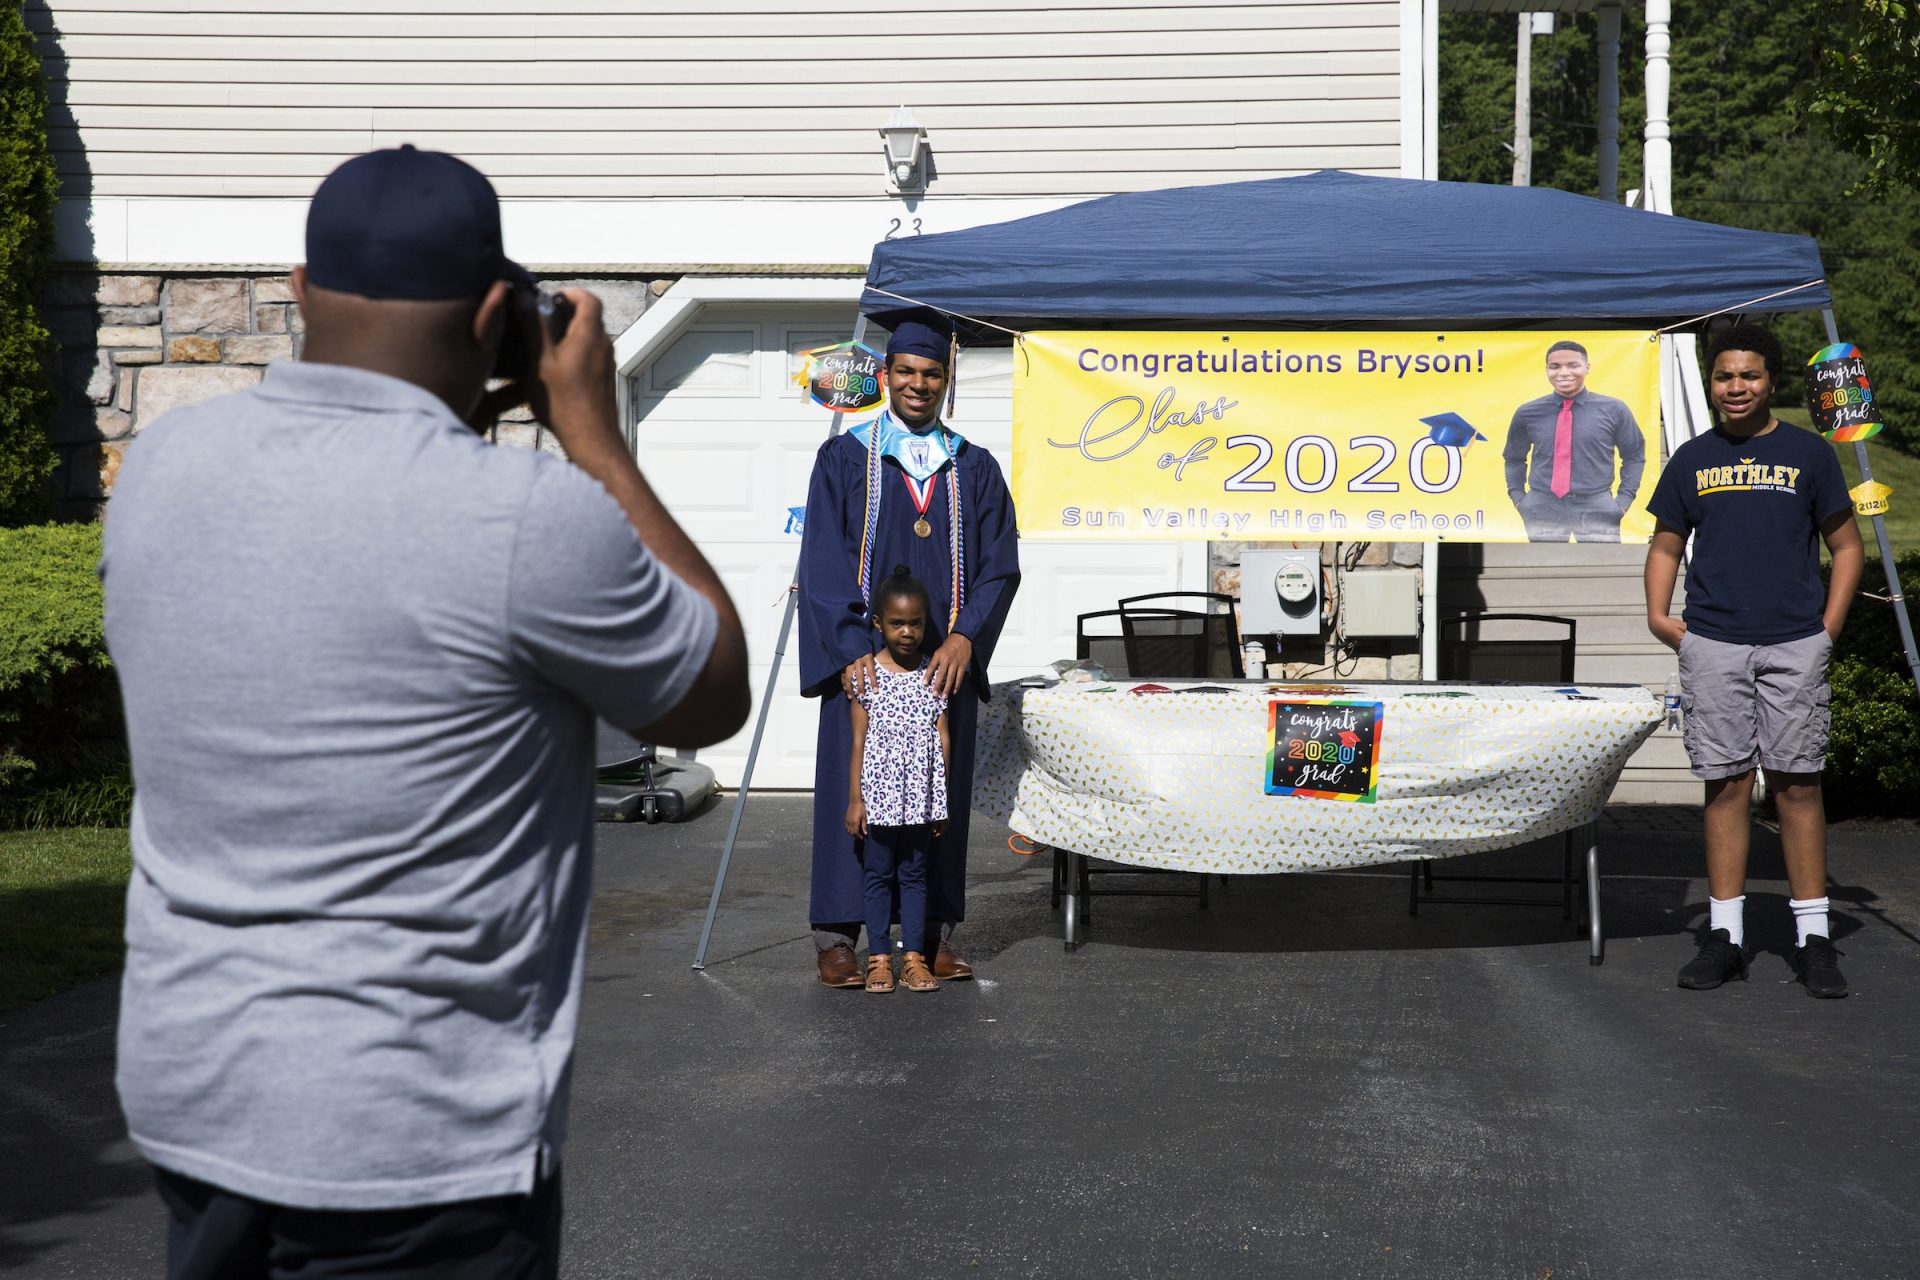 Greg Eldridge (left) takes a photo of his kids (from left) Bryson, Kennedy, and Blaise in the driveway of their home on June 9, 2020. Bryson Eldridge is graduating from Sun Valley High School this year and will be attending the University of Scranton in the fall. (Rachel Wisniewski for WHYY)